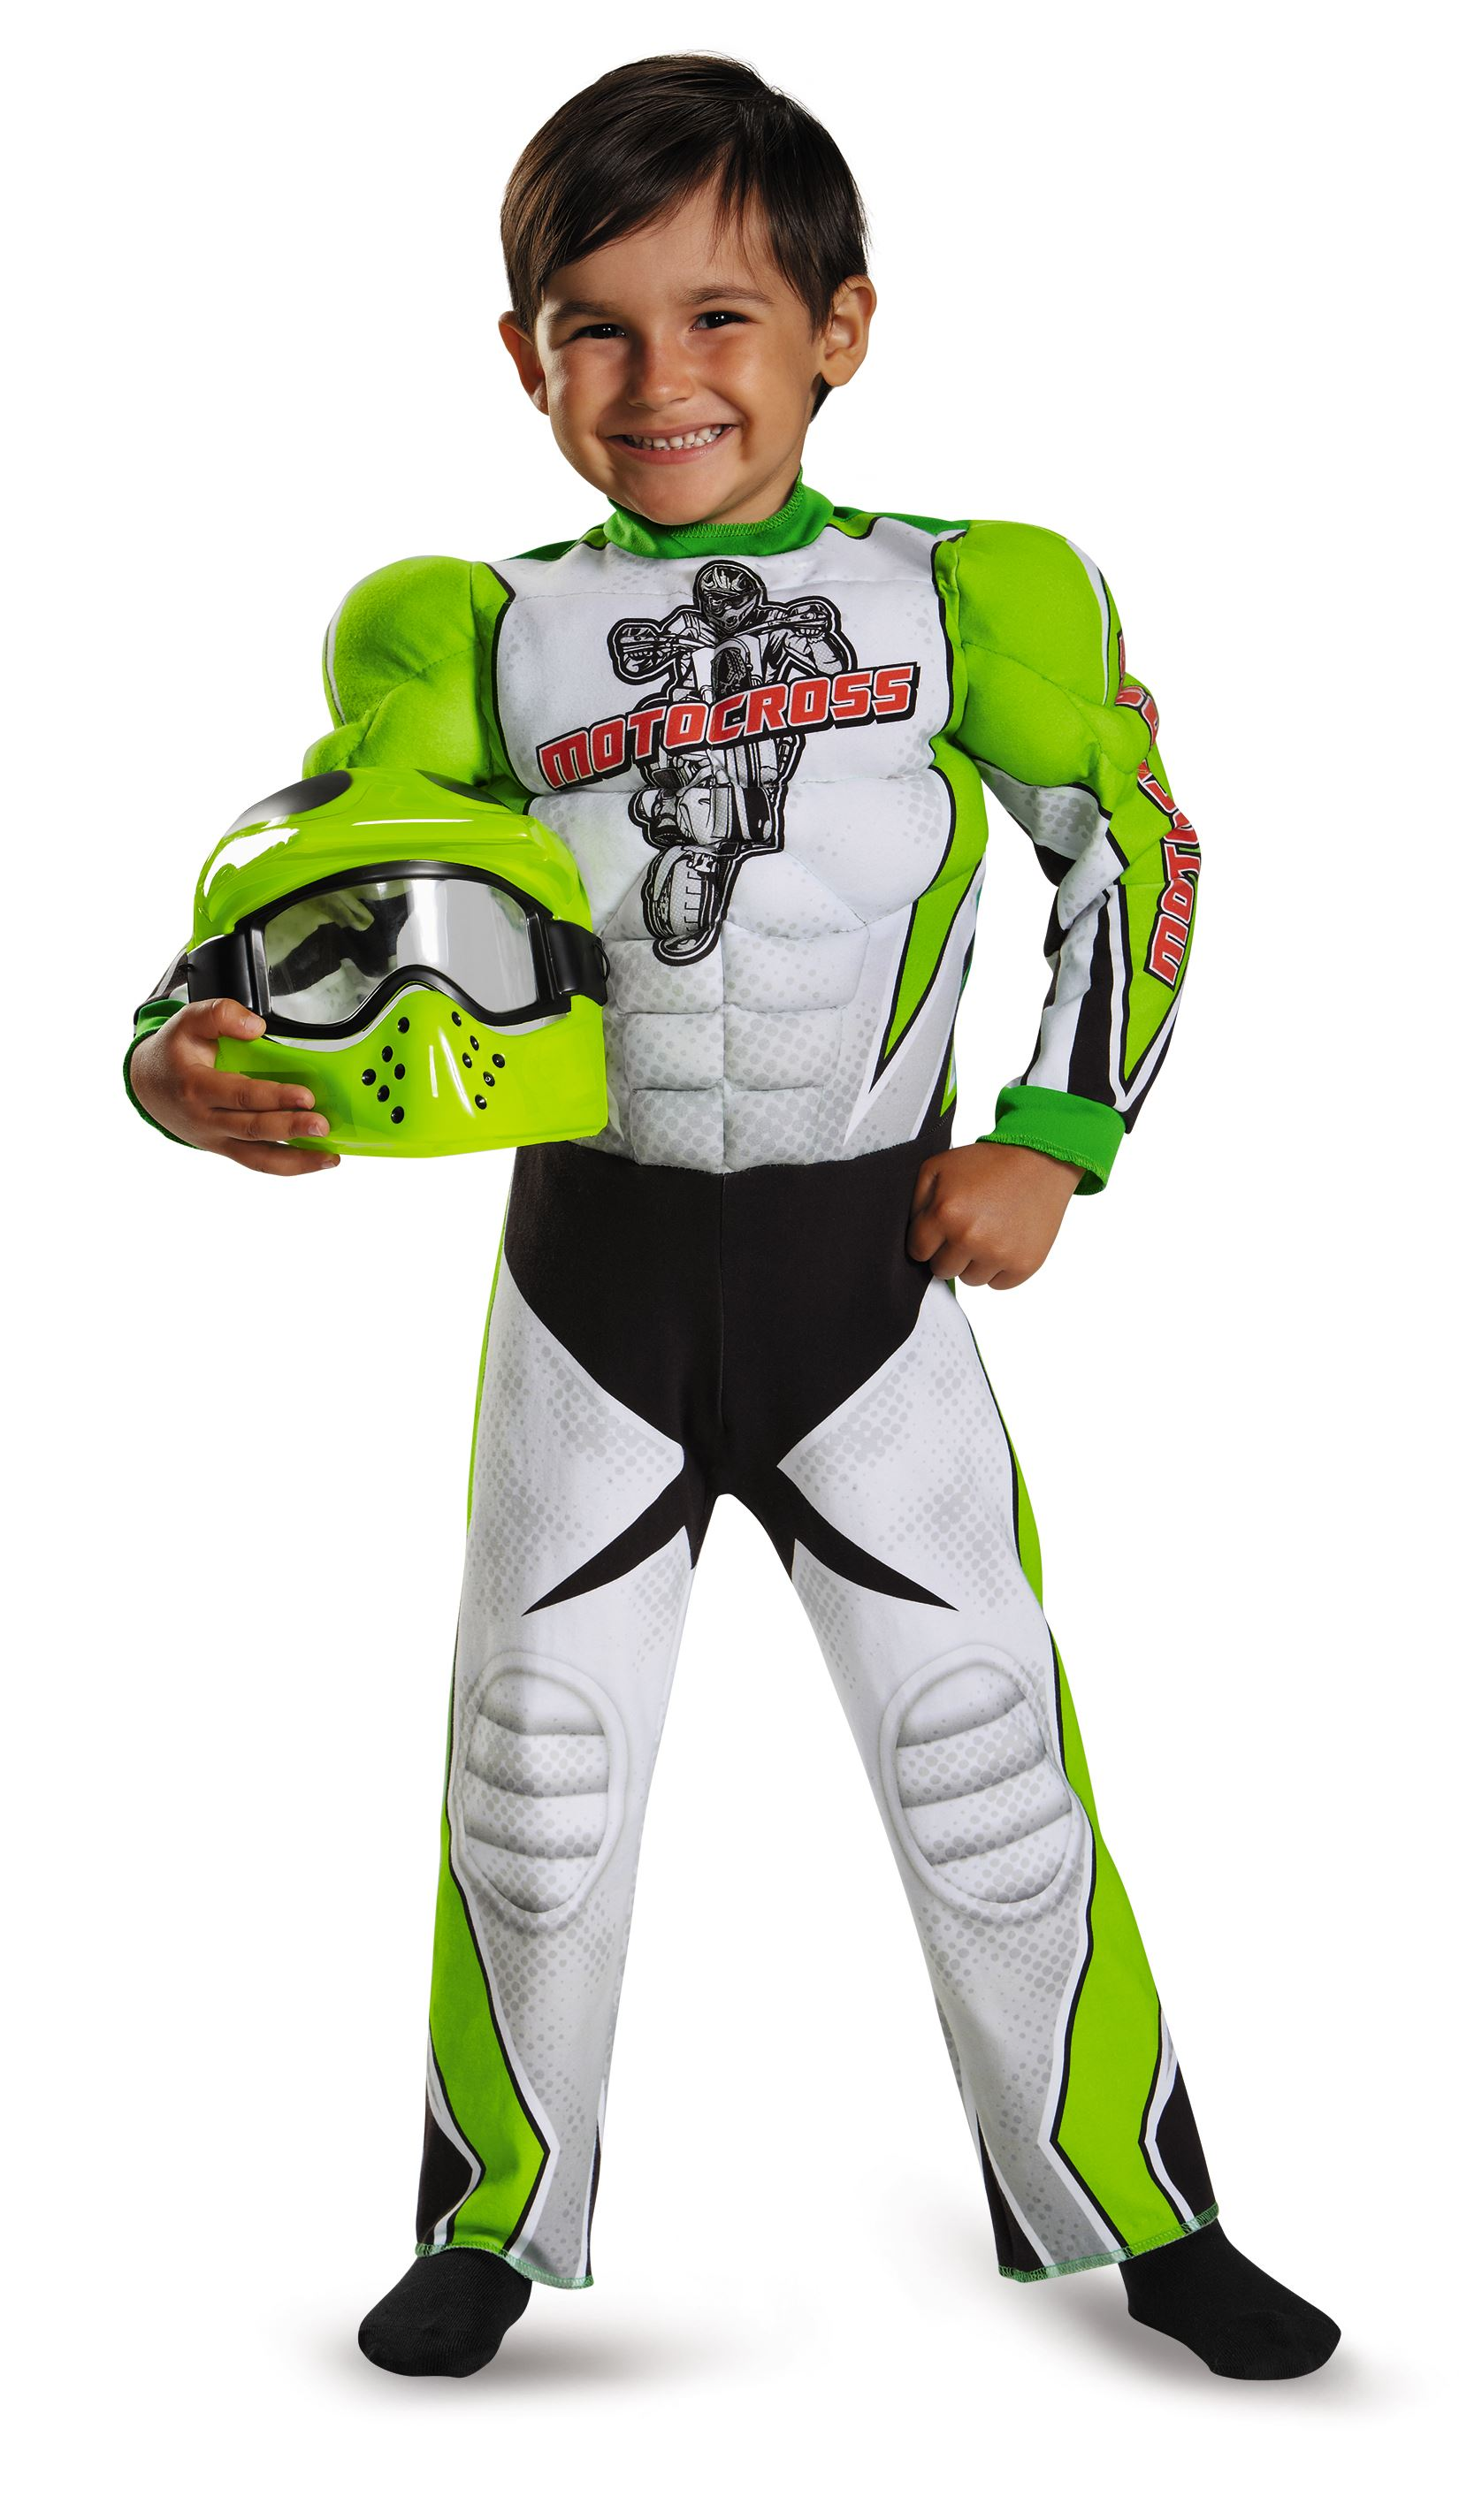 Kids Motocross Toddler Muscle Boys Costume | $20.99 | The Costume Land